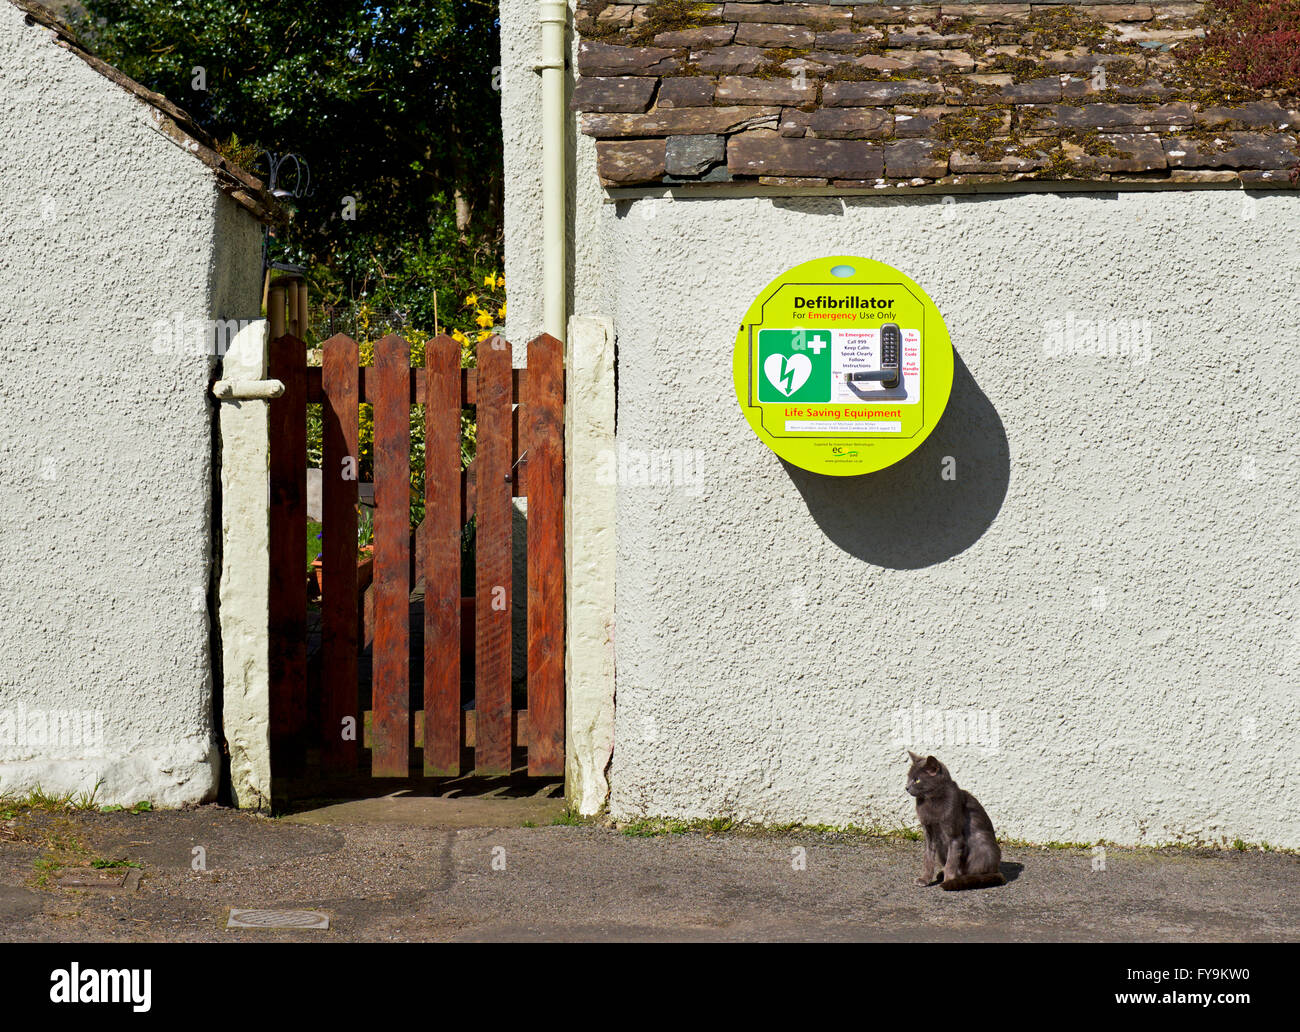 Defibrillator mounted in wall in village, England UK - Stock Image